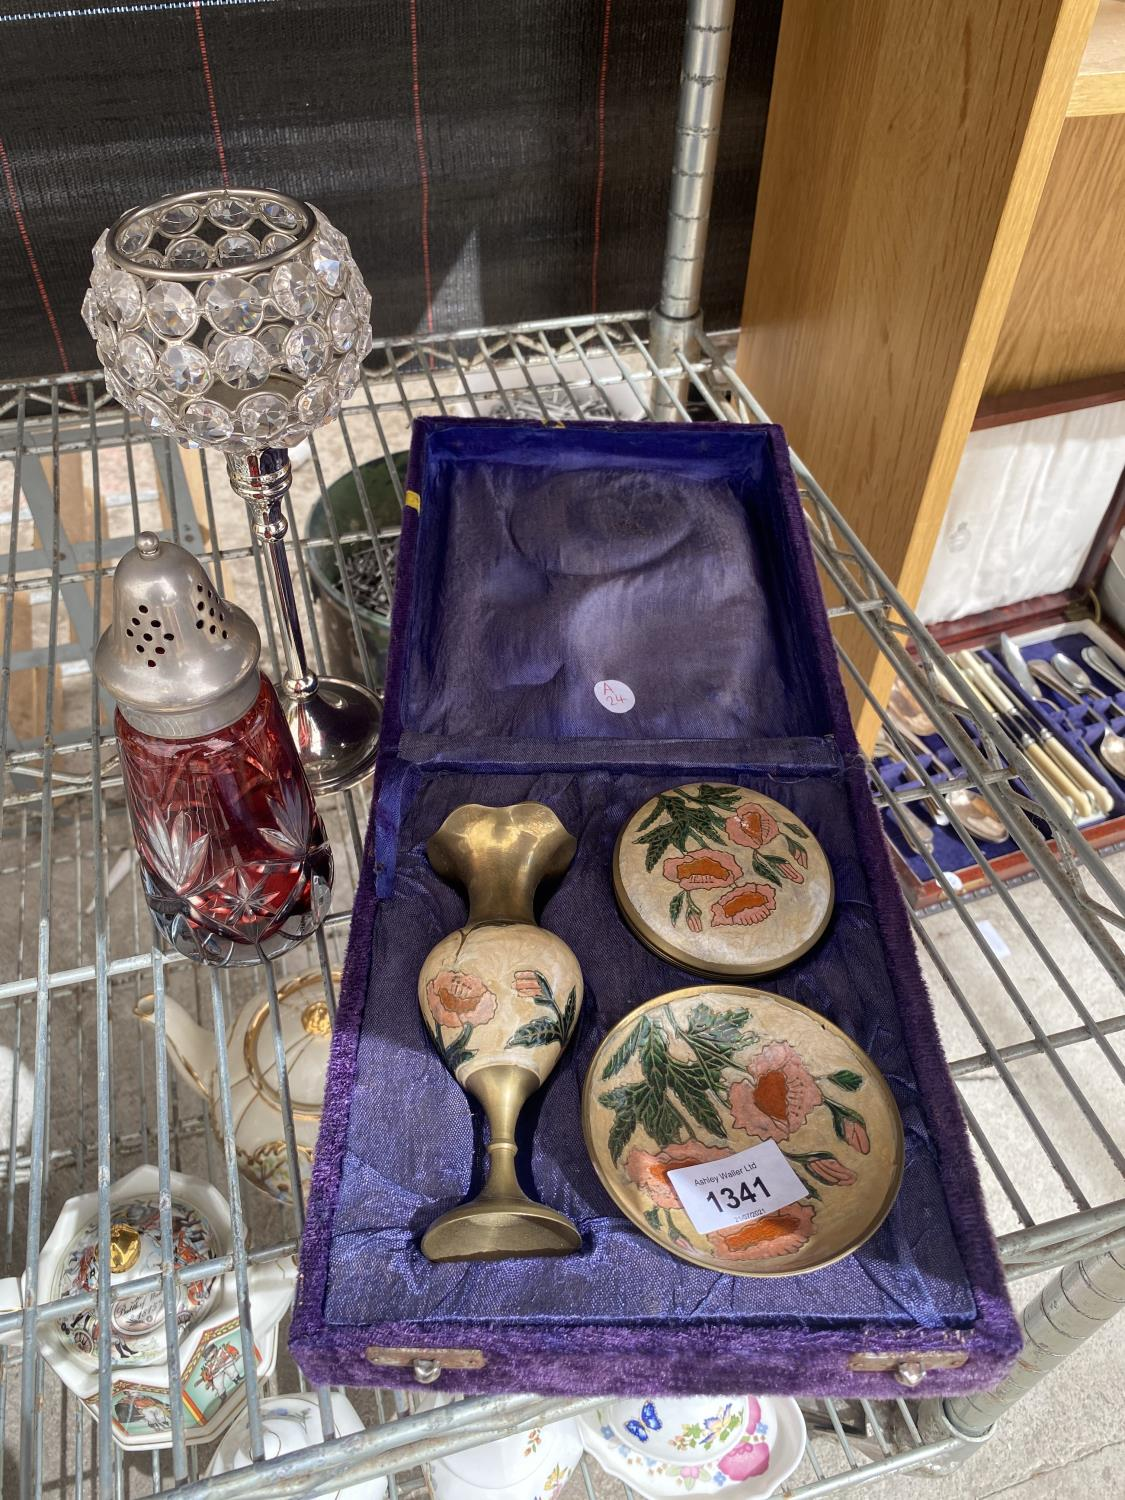 A BOXED BRASS VASE, TRINKET DISH AND TRINKET BOWL, WITH A SUGAR SHAKER AND A CANDLE HOLDER